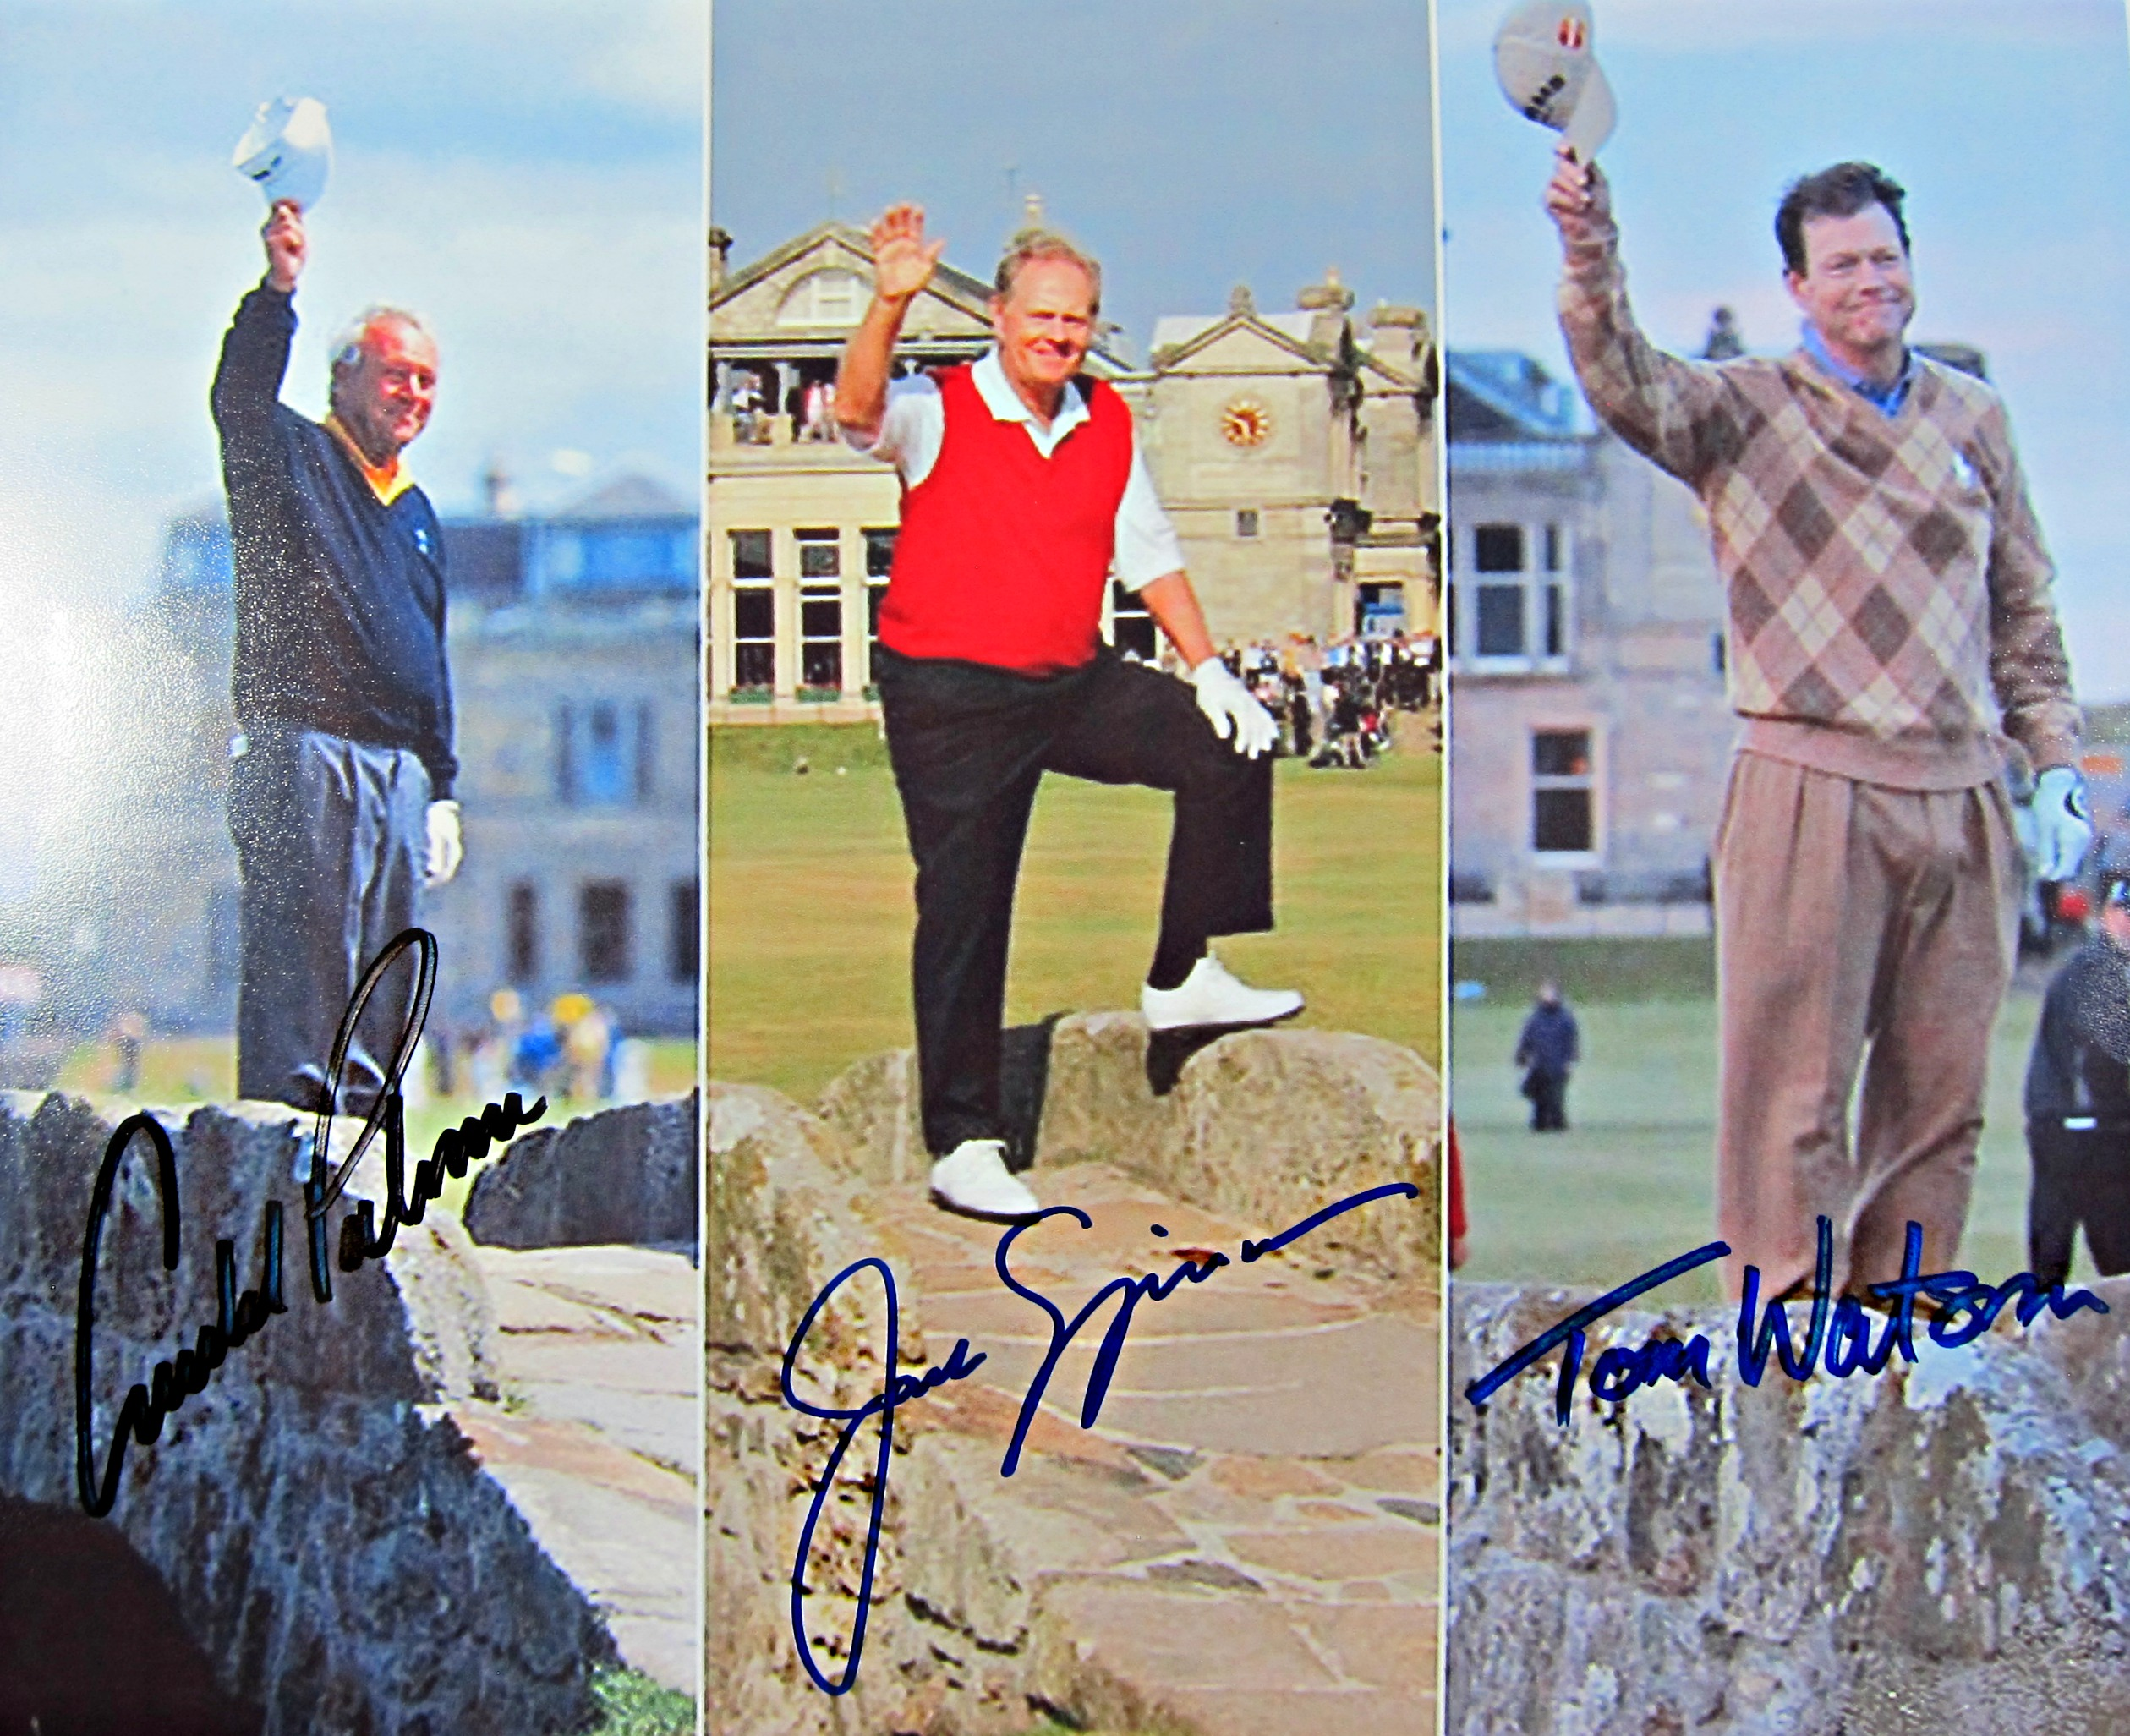 palmer-nicklaus-watson-signed-photo.jpg